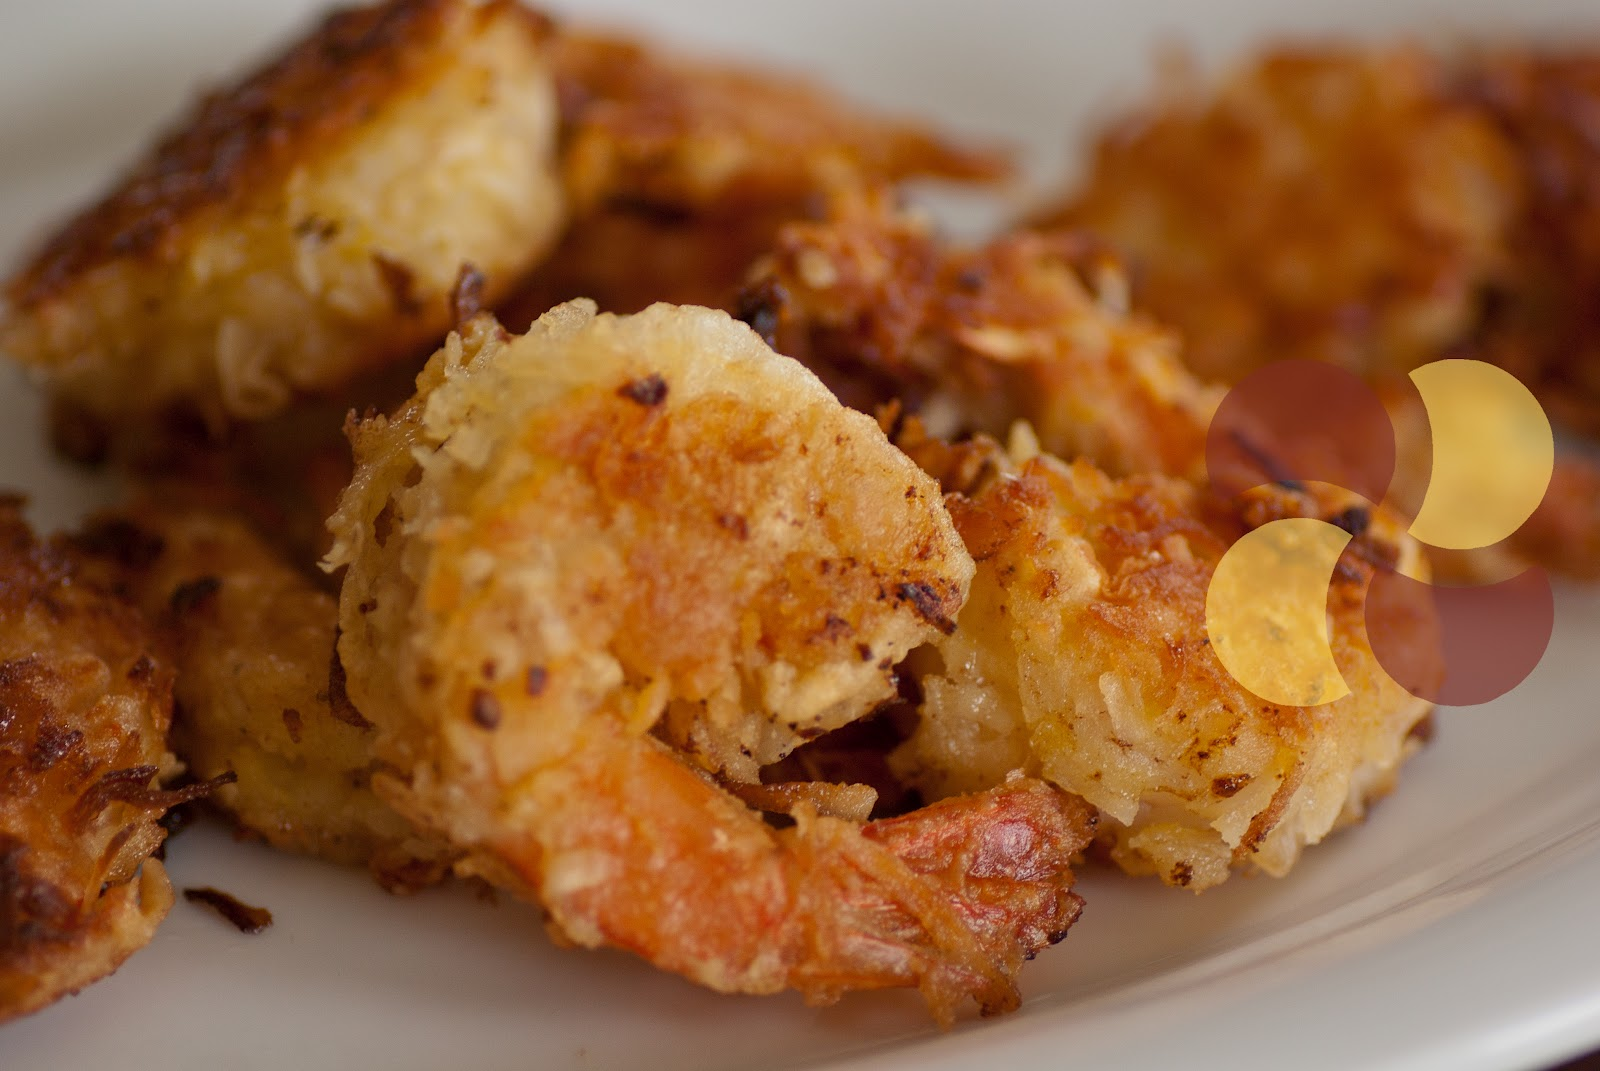 ... good coconut shrimp i especially love it when the shrimp are